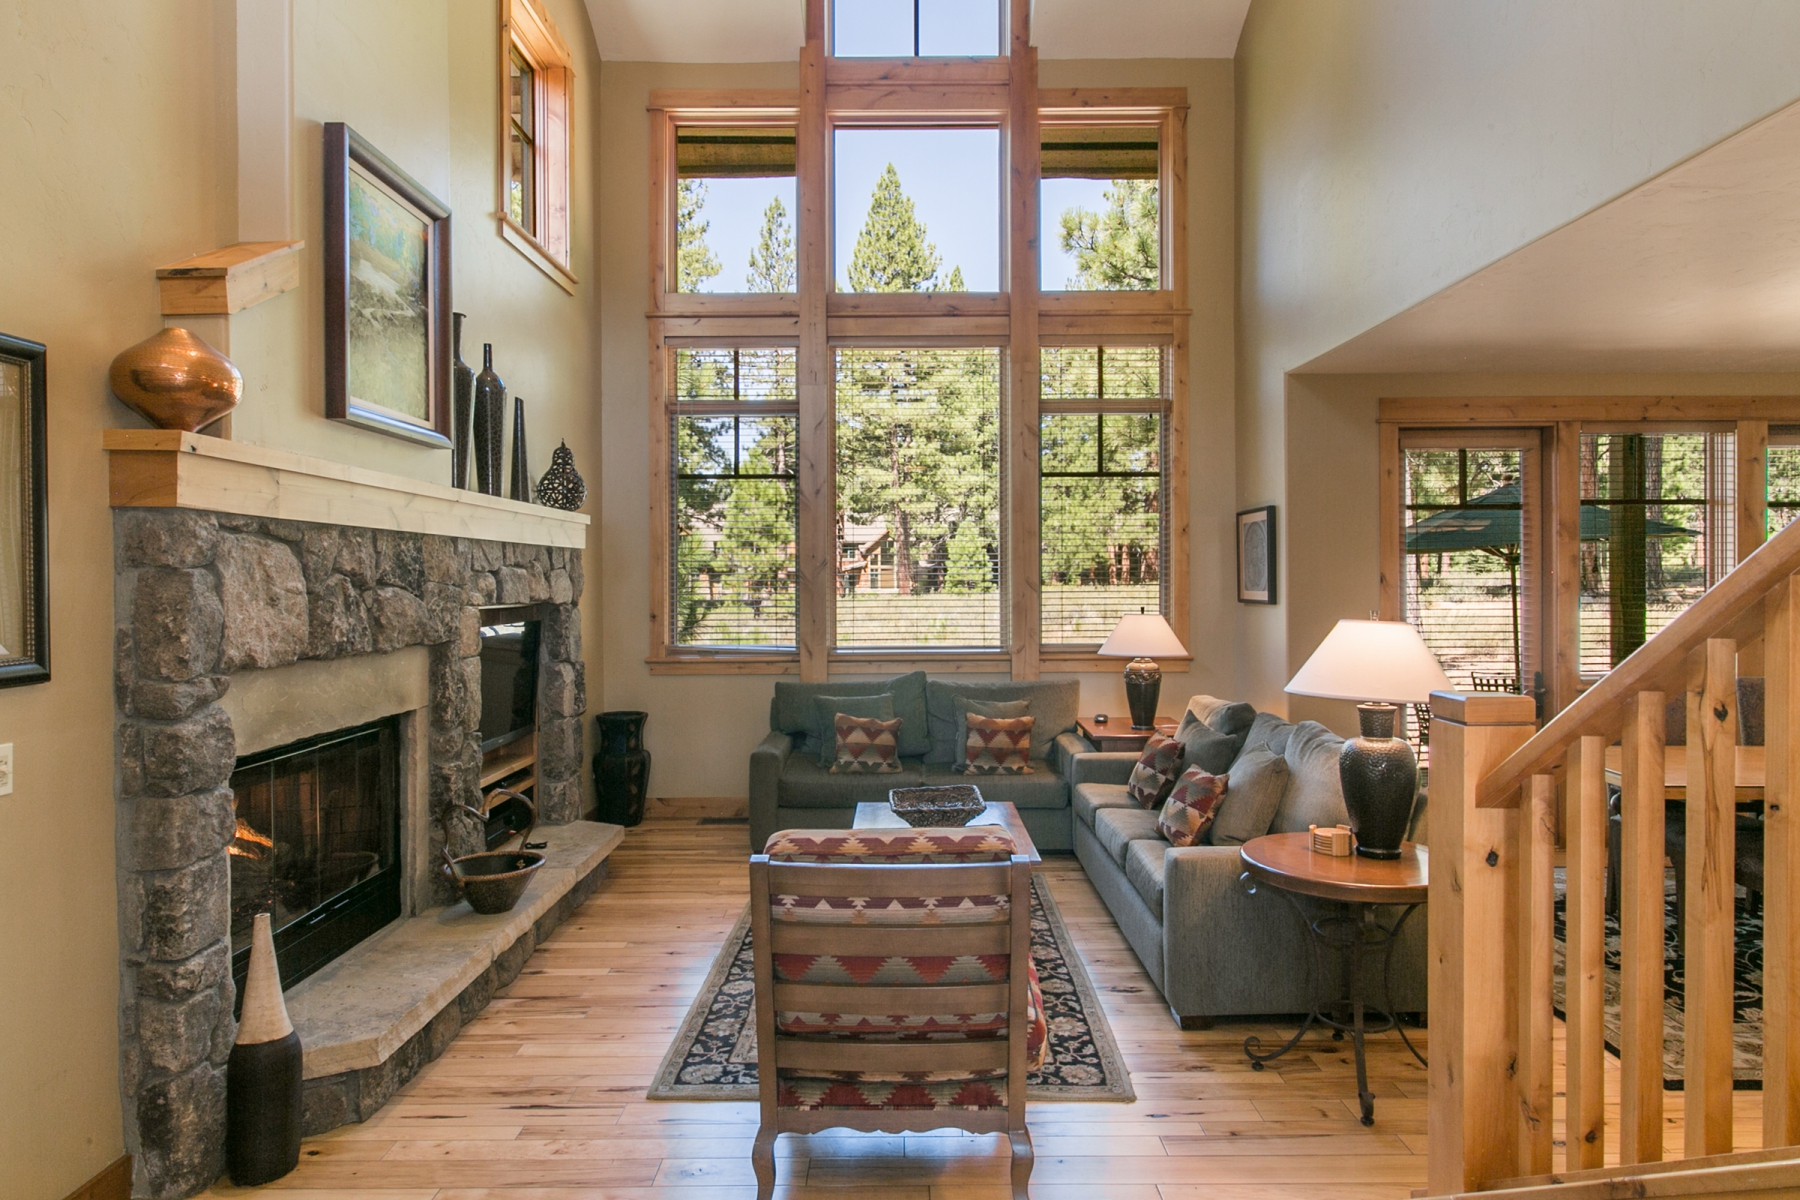 Additional photo for property listing at 12202 Lookout Loop F20-24 Truckee California, 96161 12202 Lookout Loop F20-24 特拉基, 加利福尼亚州 96161 美国